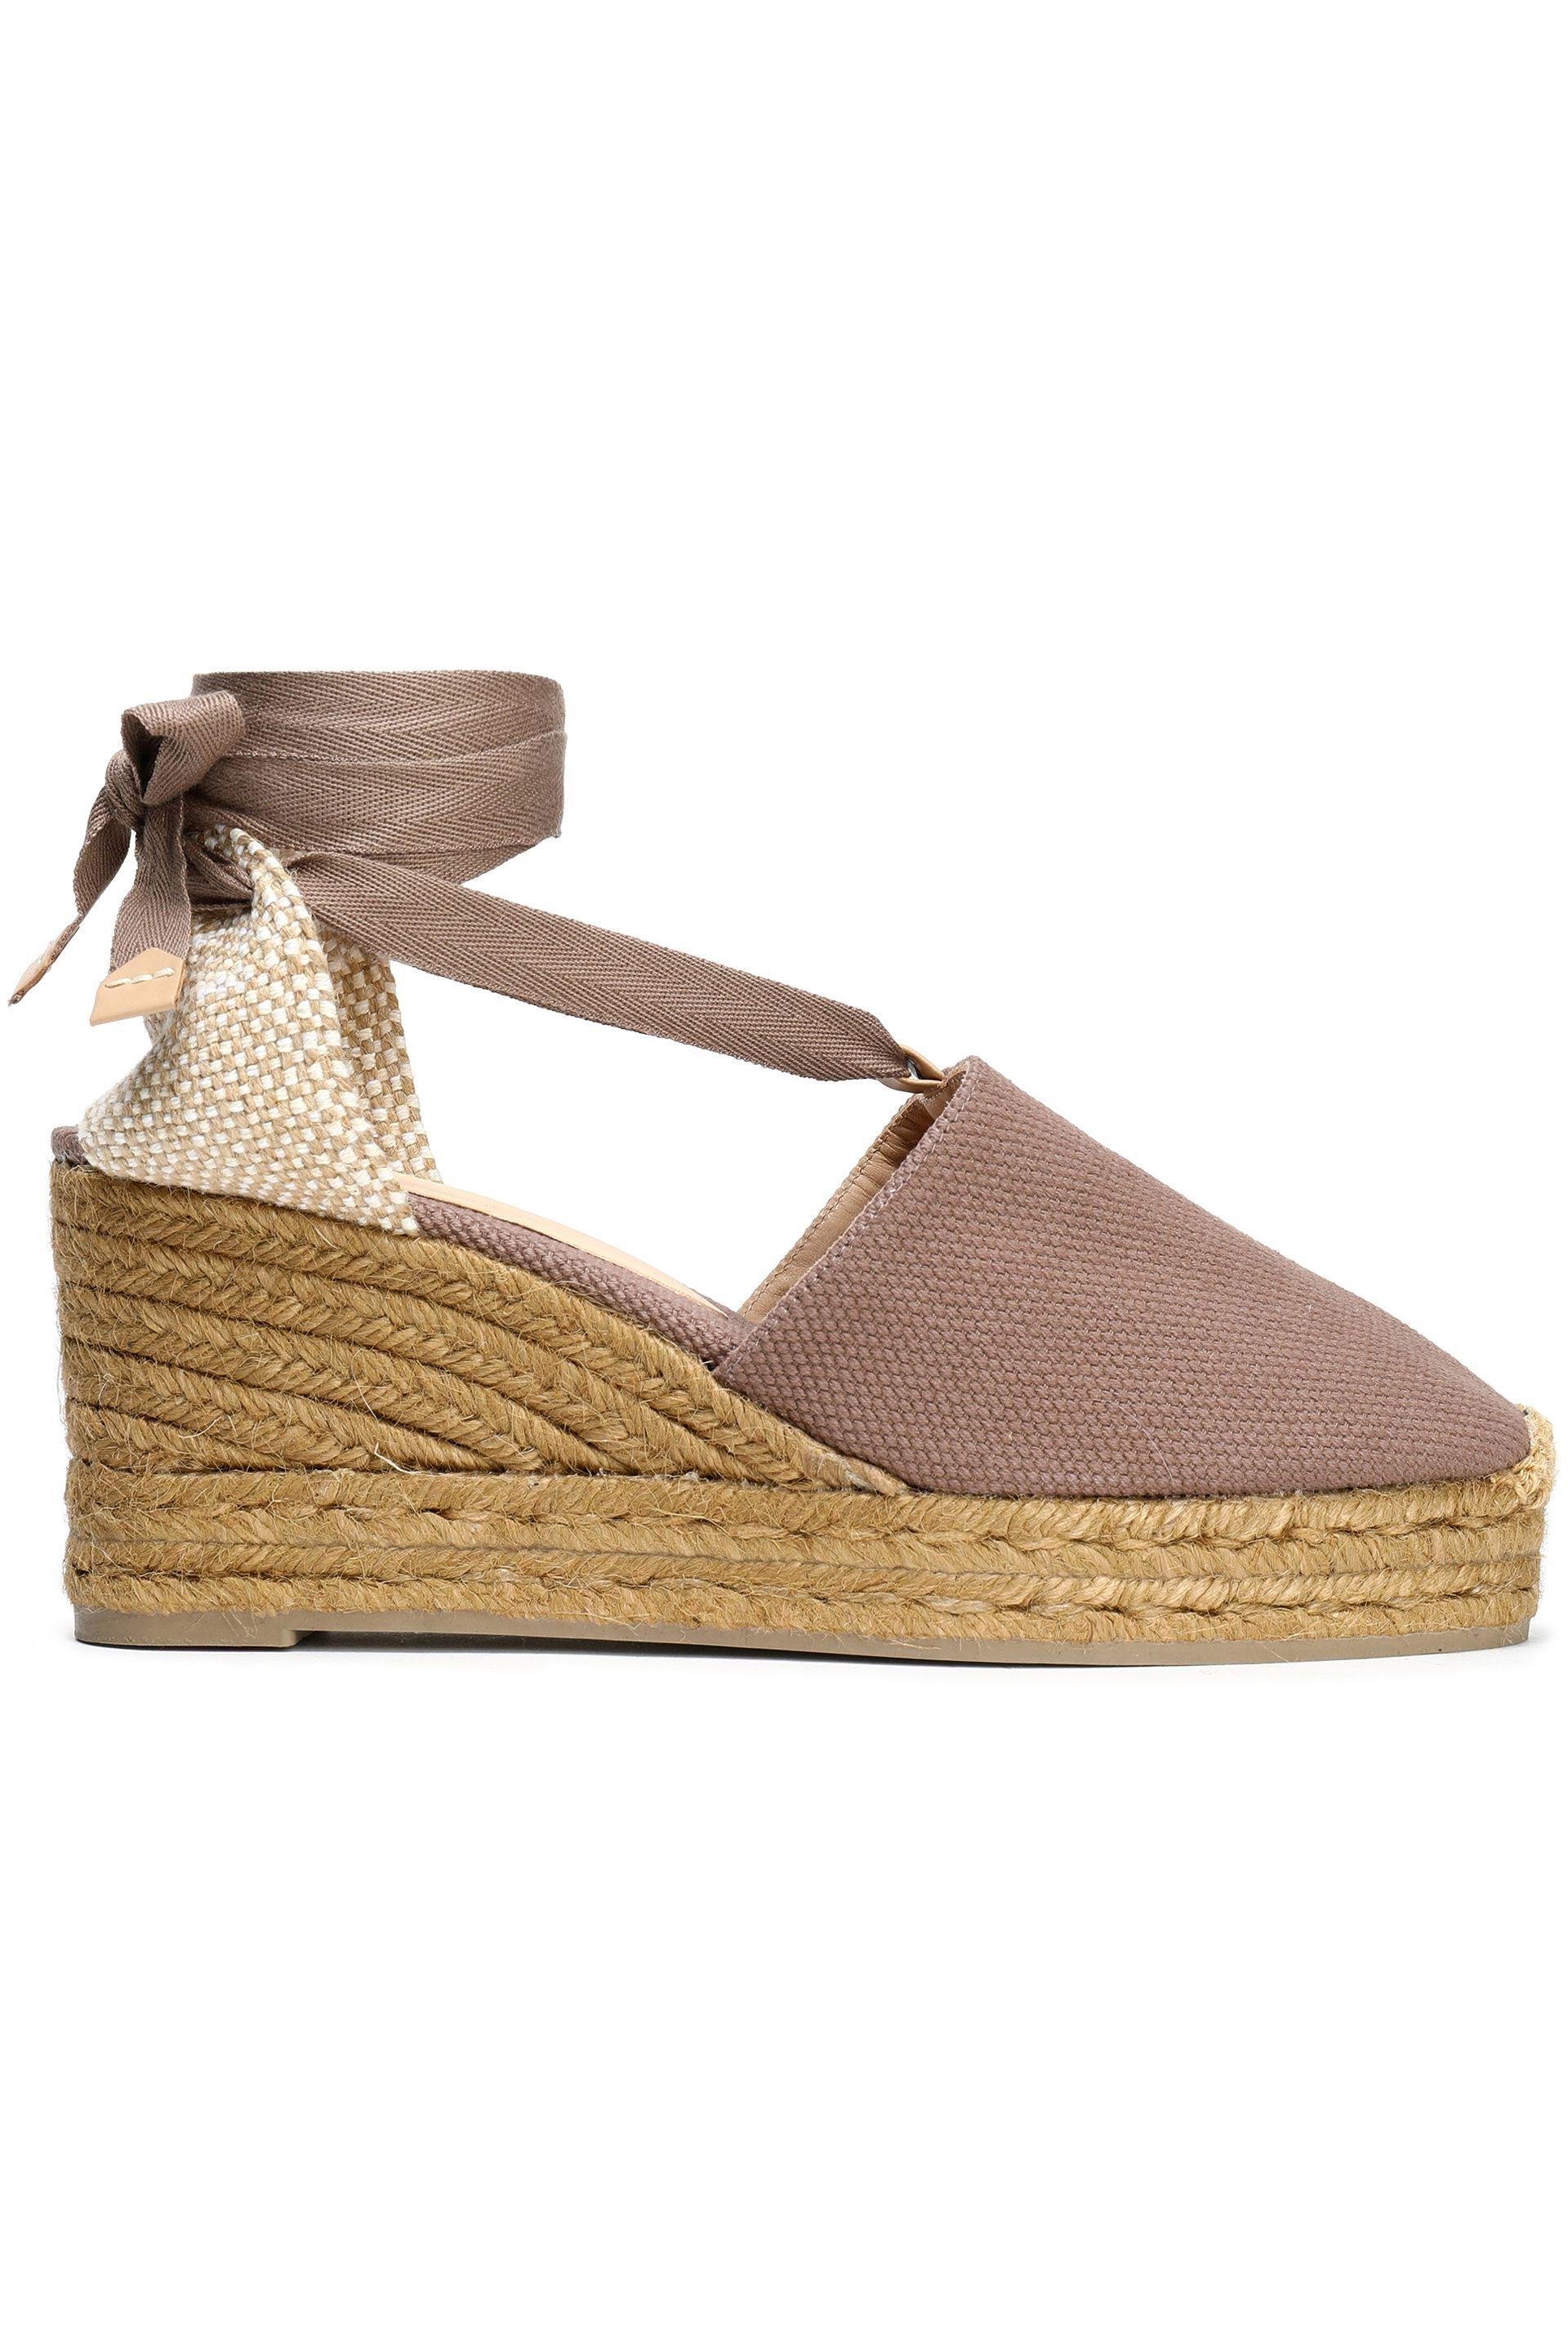 7535aa75d94 Castaner Castañer Woman Woven And Canvas Wedge Espadrilles Taupe in ...